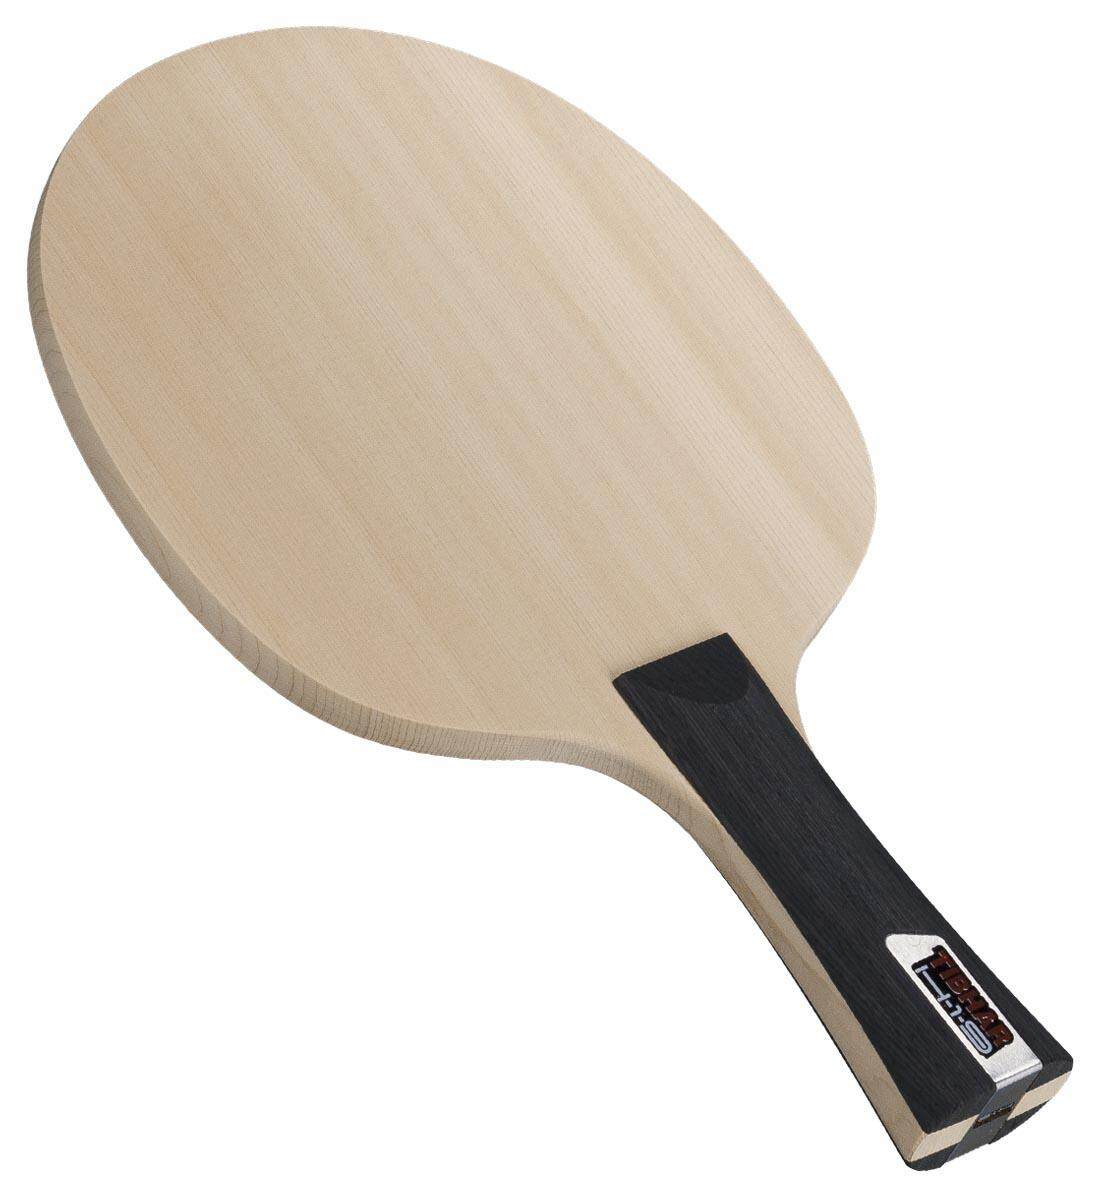 Tibhar Hinoki H-1-9R Table Tennis Blade